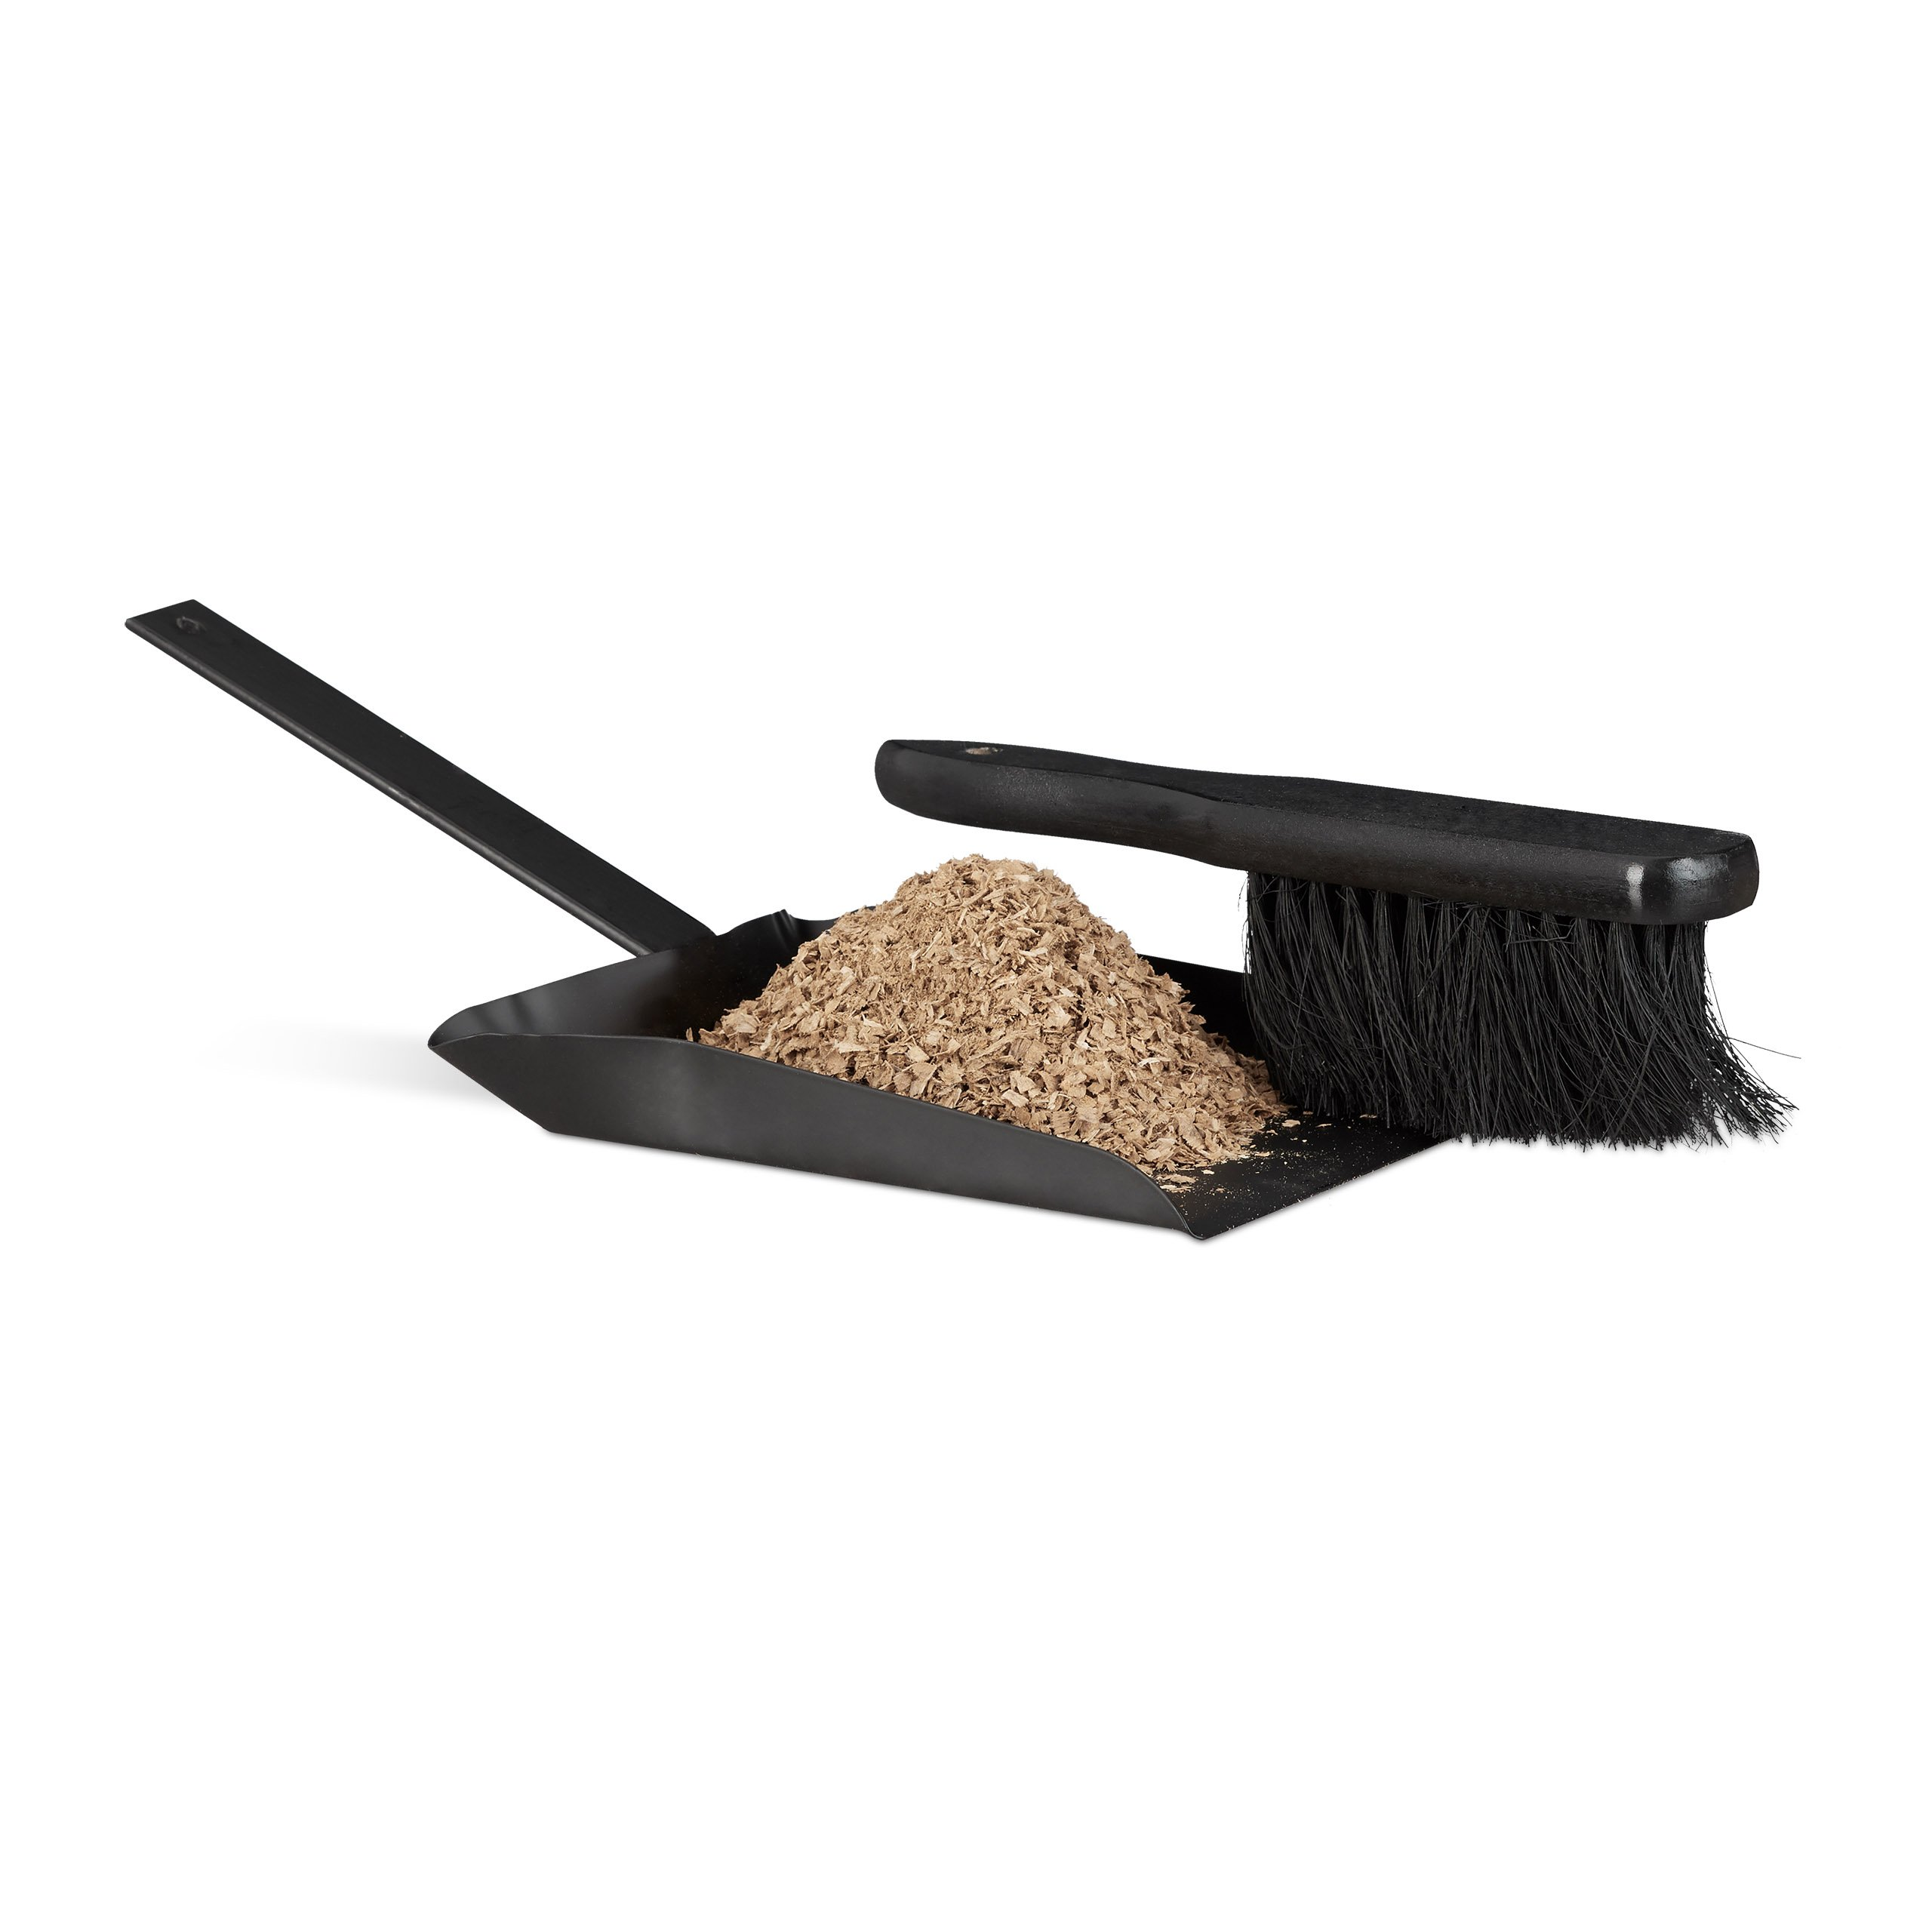 Relaxdays Dustpan and Brush Set, 37 cm, Steel, Sweeping Set with Broom, Eyelet, Outdoor and Indoor, Black